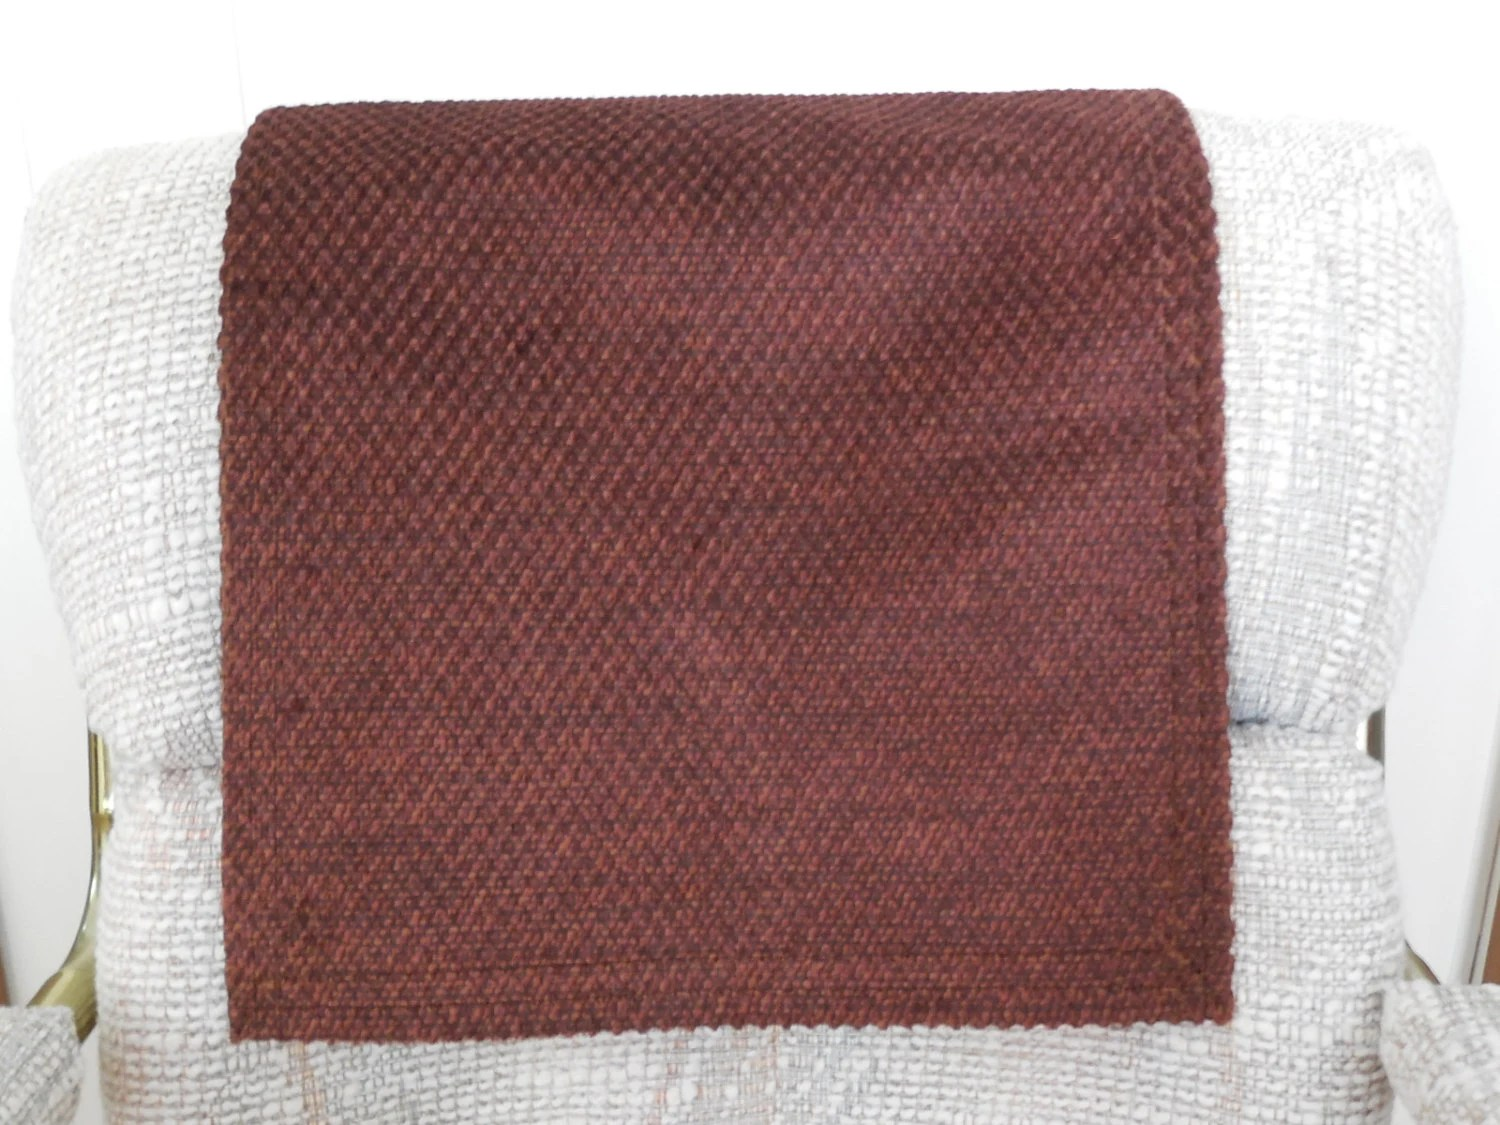 chair covers for headrest first high invented recliner caps hd cover pad furniture by